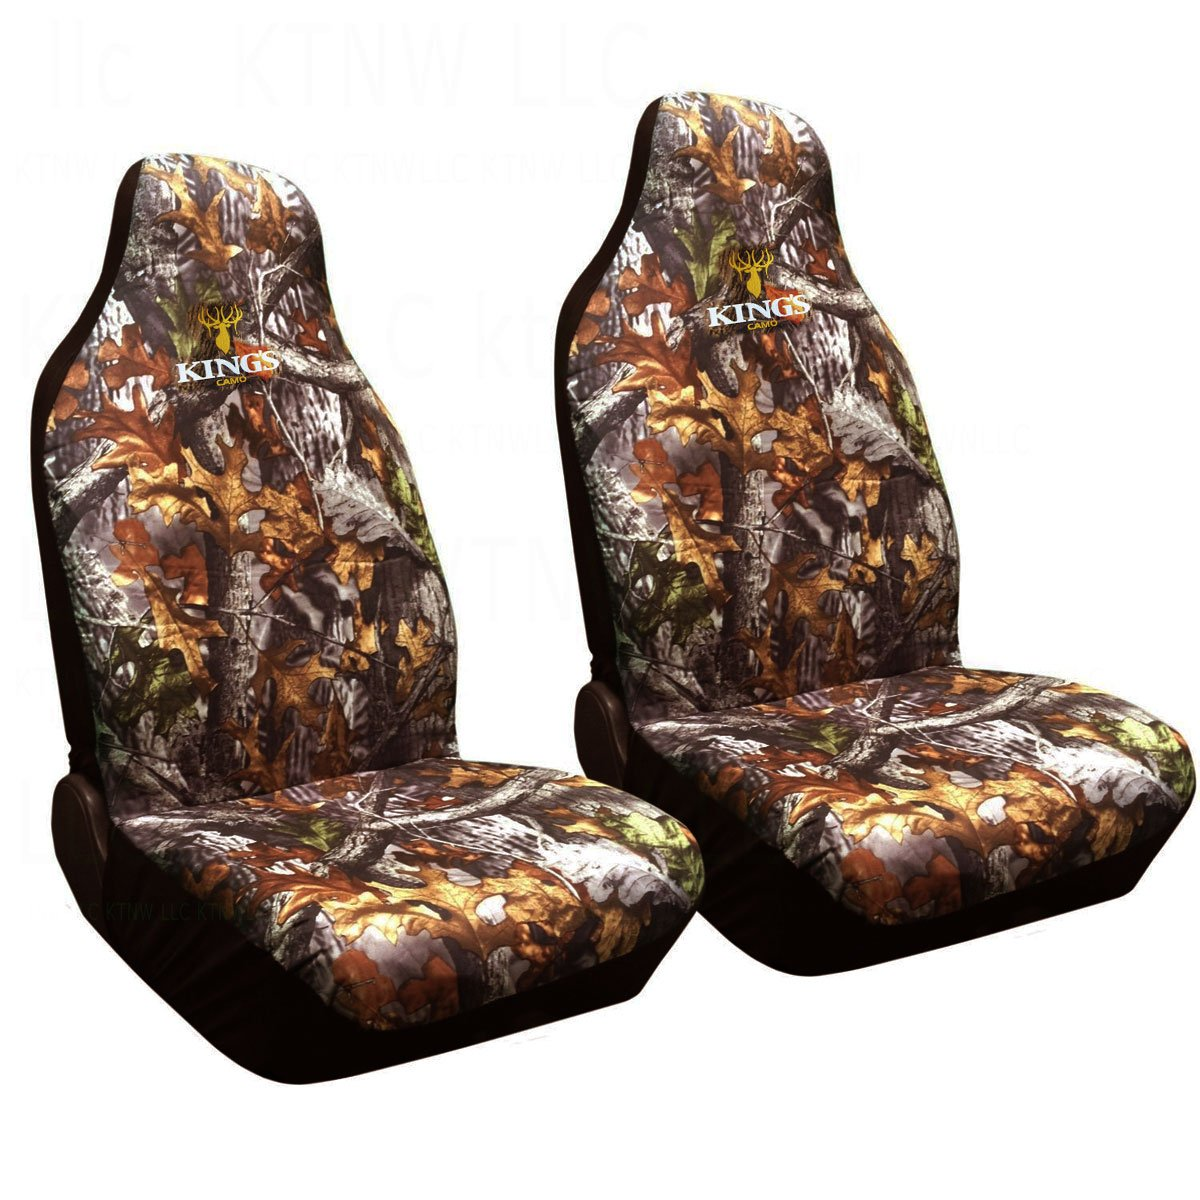 Two Officially Licensed Kings Camo Universal Fit Highback Seat Covers - Woodland Shadow King' s Camo